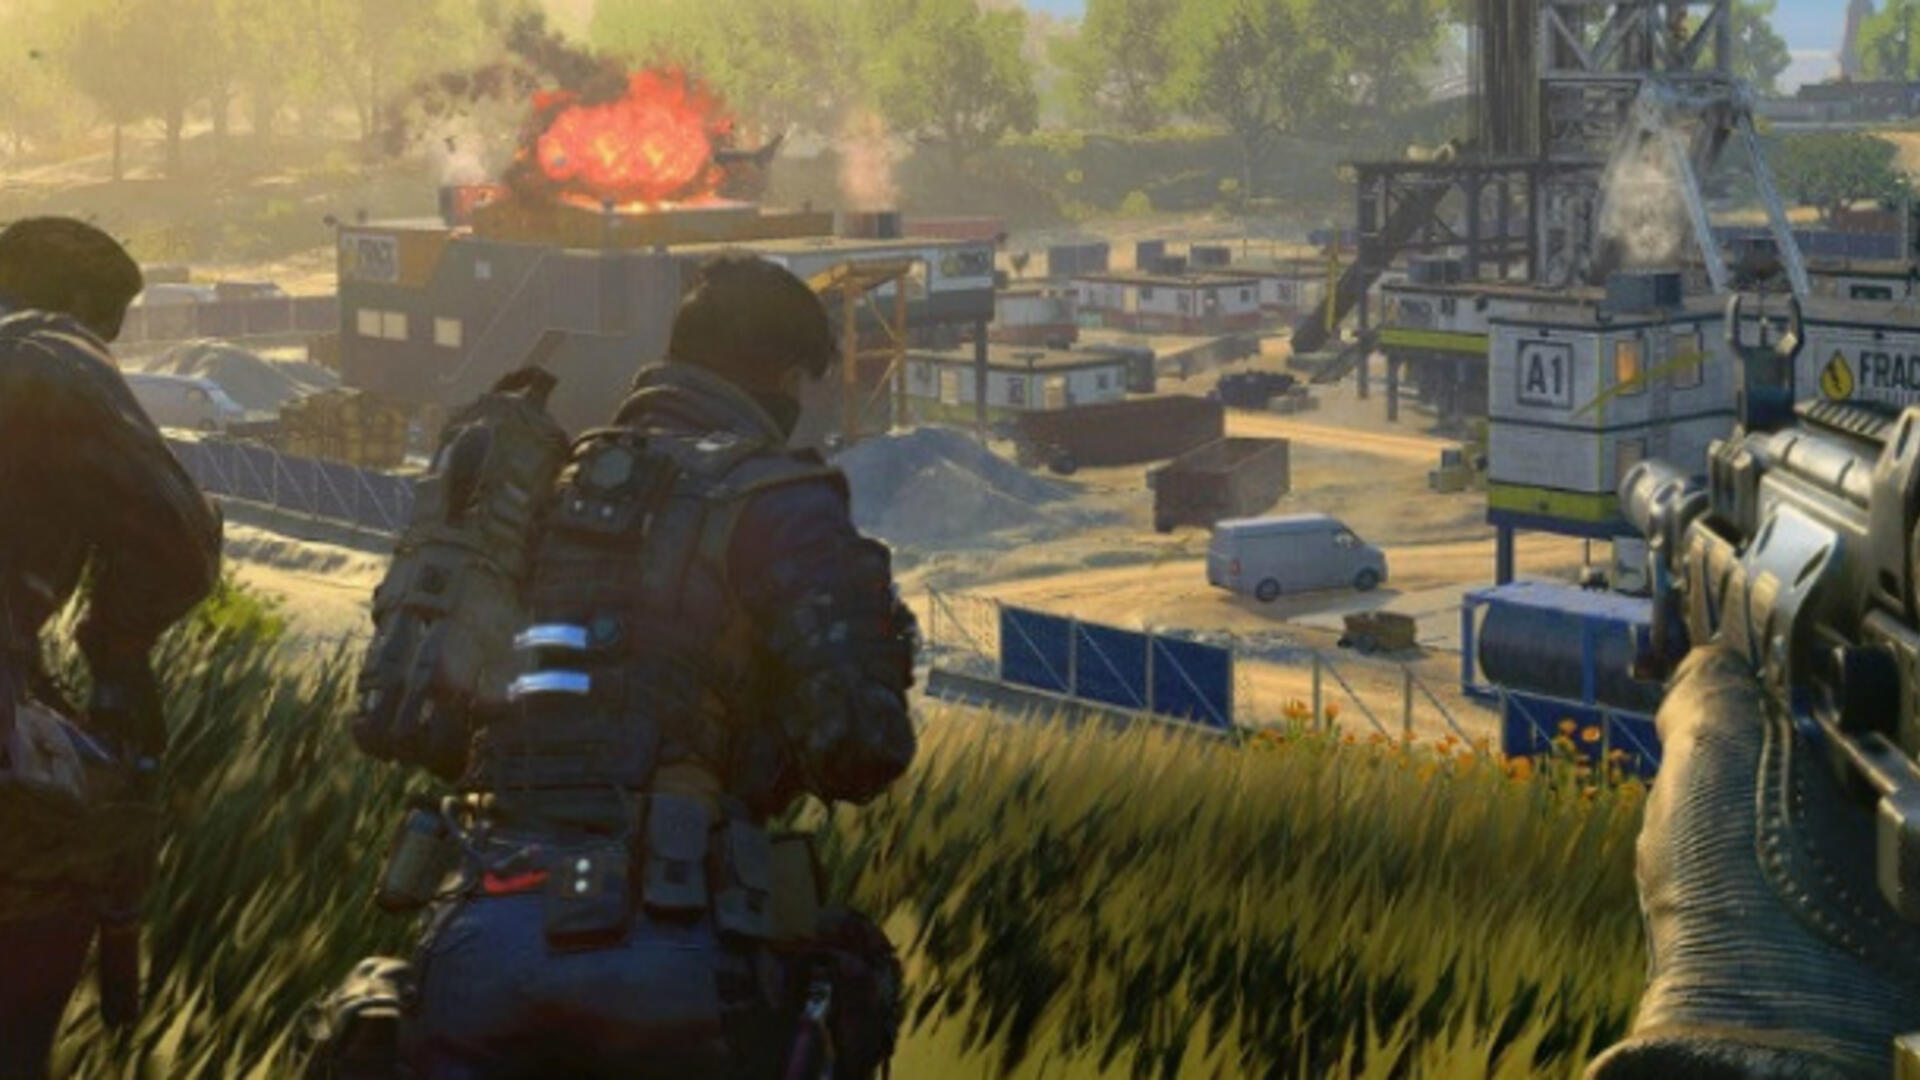 Black Ops 4 Blackout Guide - Essential Tips, Free Trial, Respawn